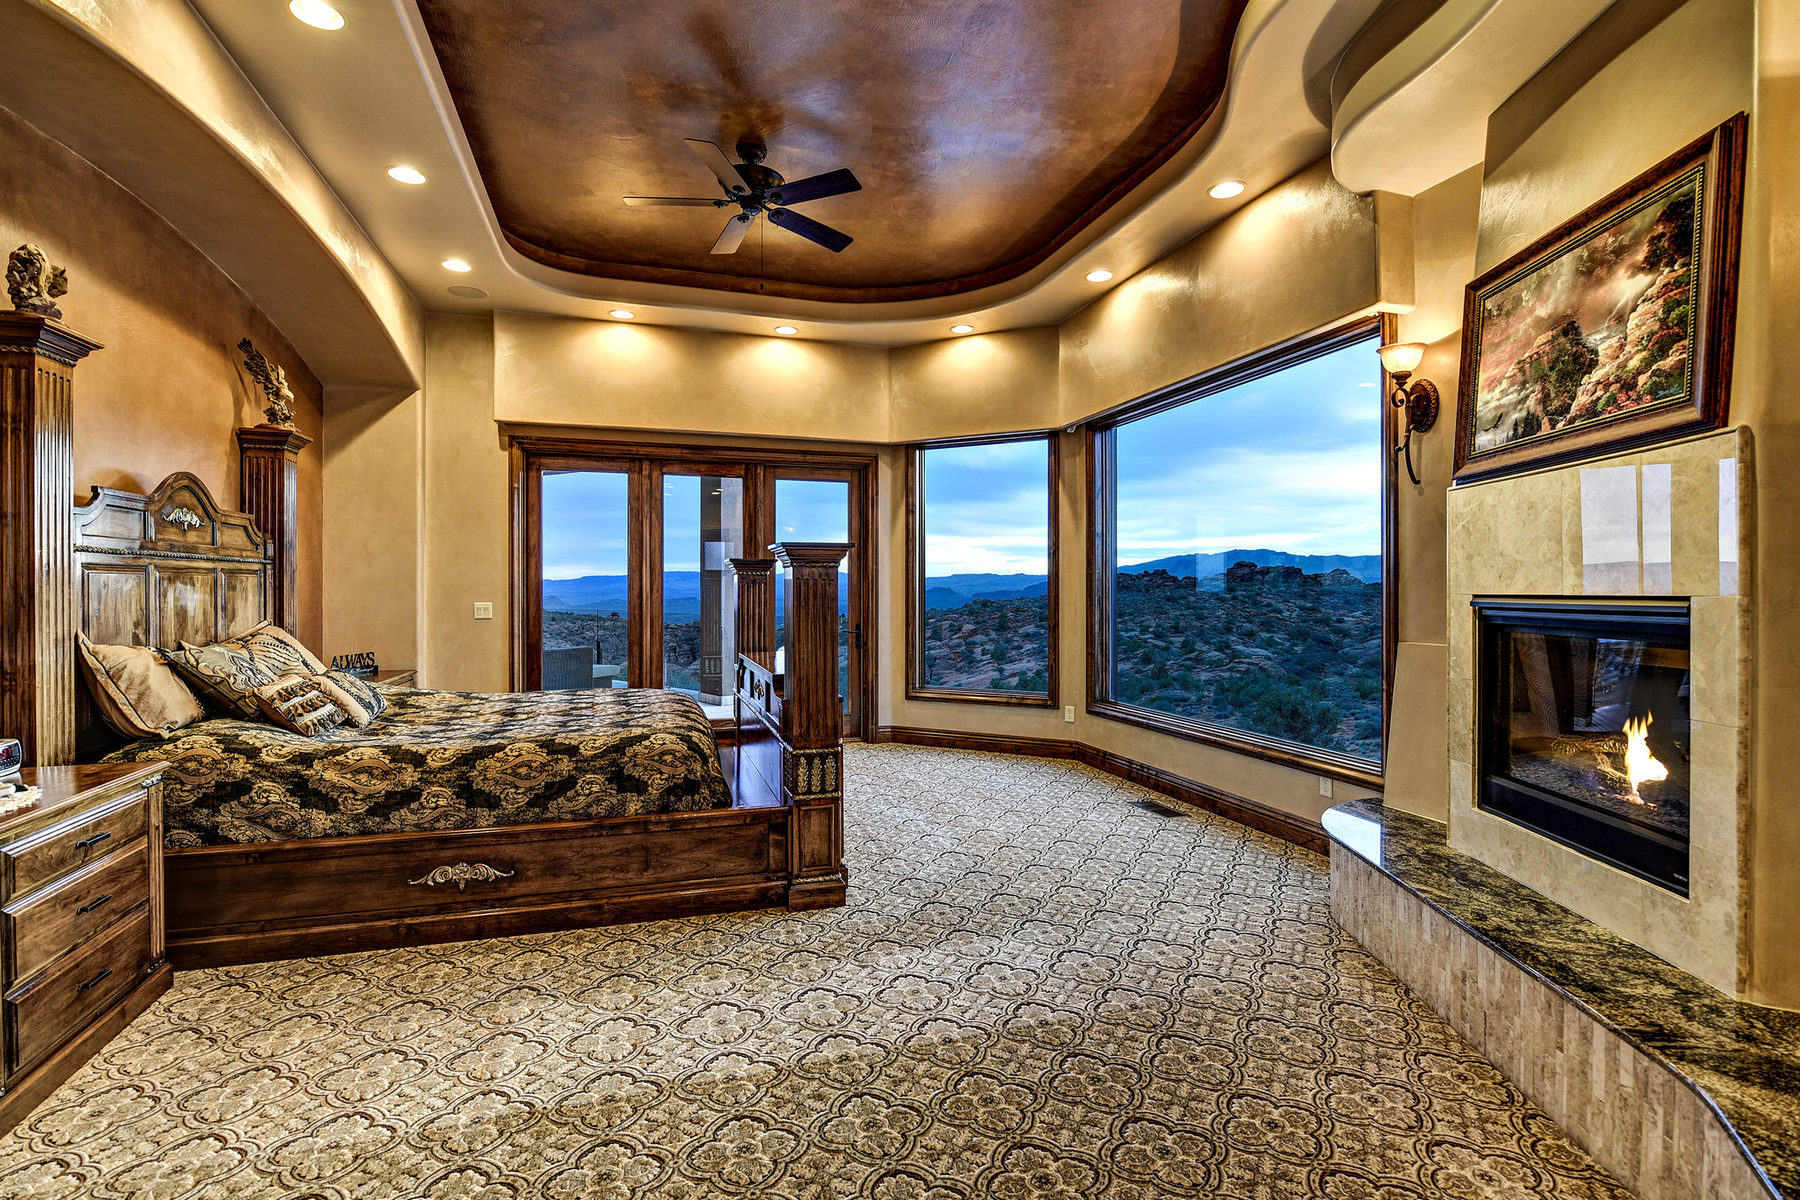 Additional photo for property listing at Spectacular Home with Unobstructed Views Overlooking Snow Canyon State Park 4549 N Painted Sky Dr St. George, Utah 84770 Estados Unidos